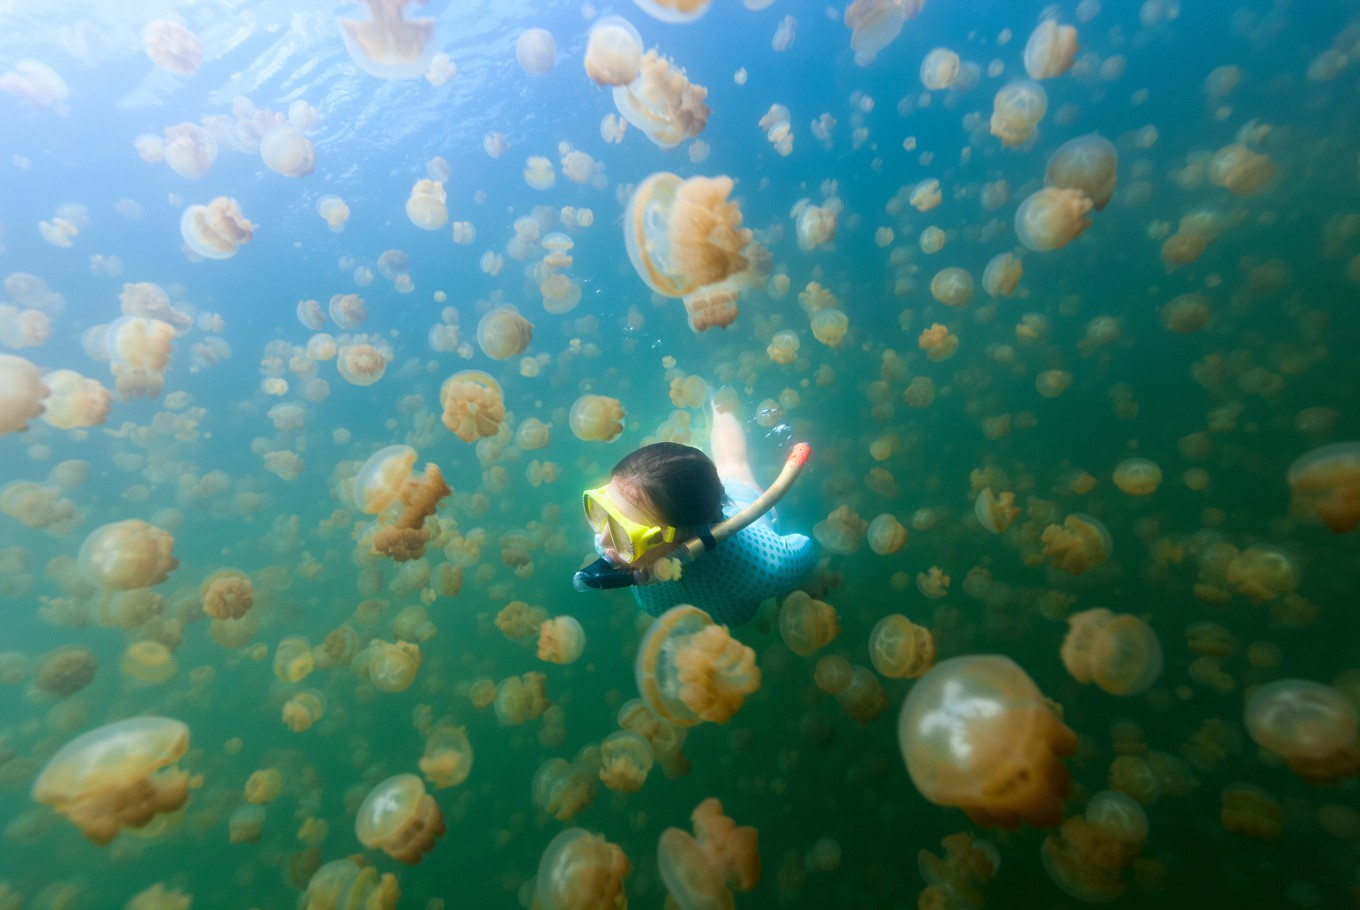 Swimmers return to bathe with Palau's golden jellyfish